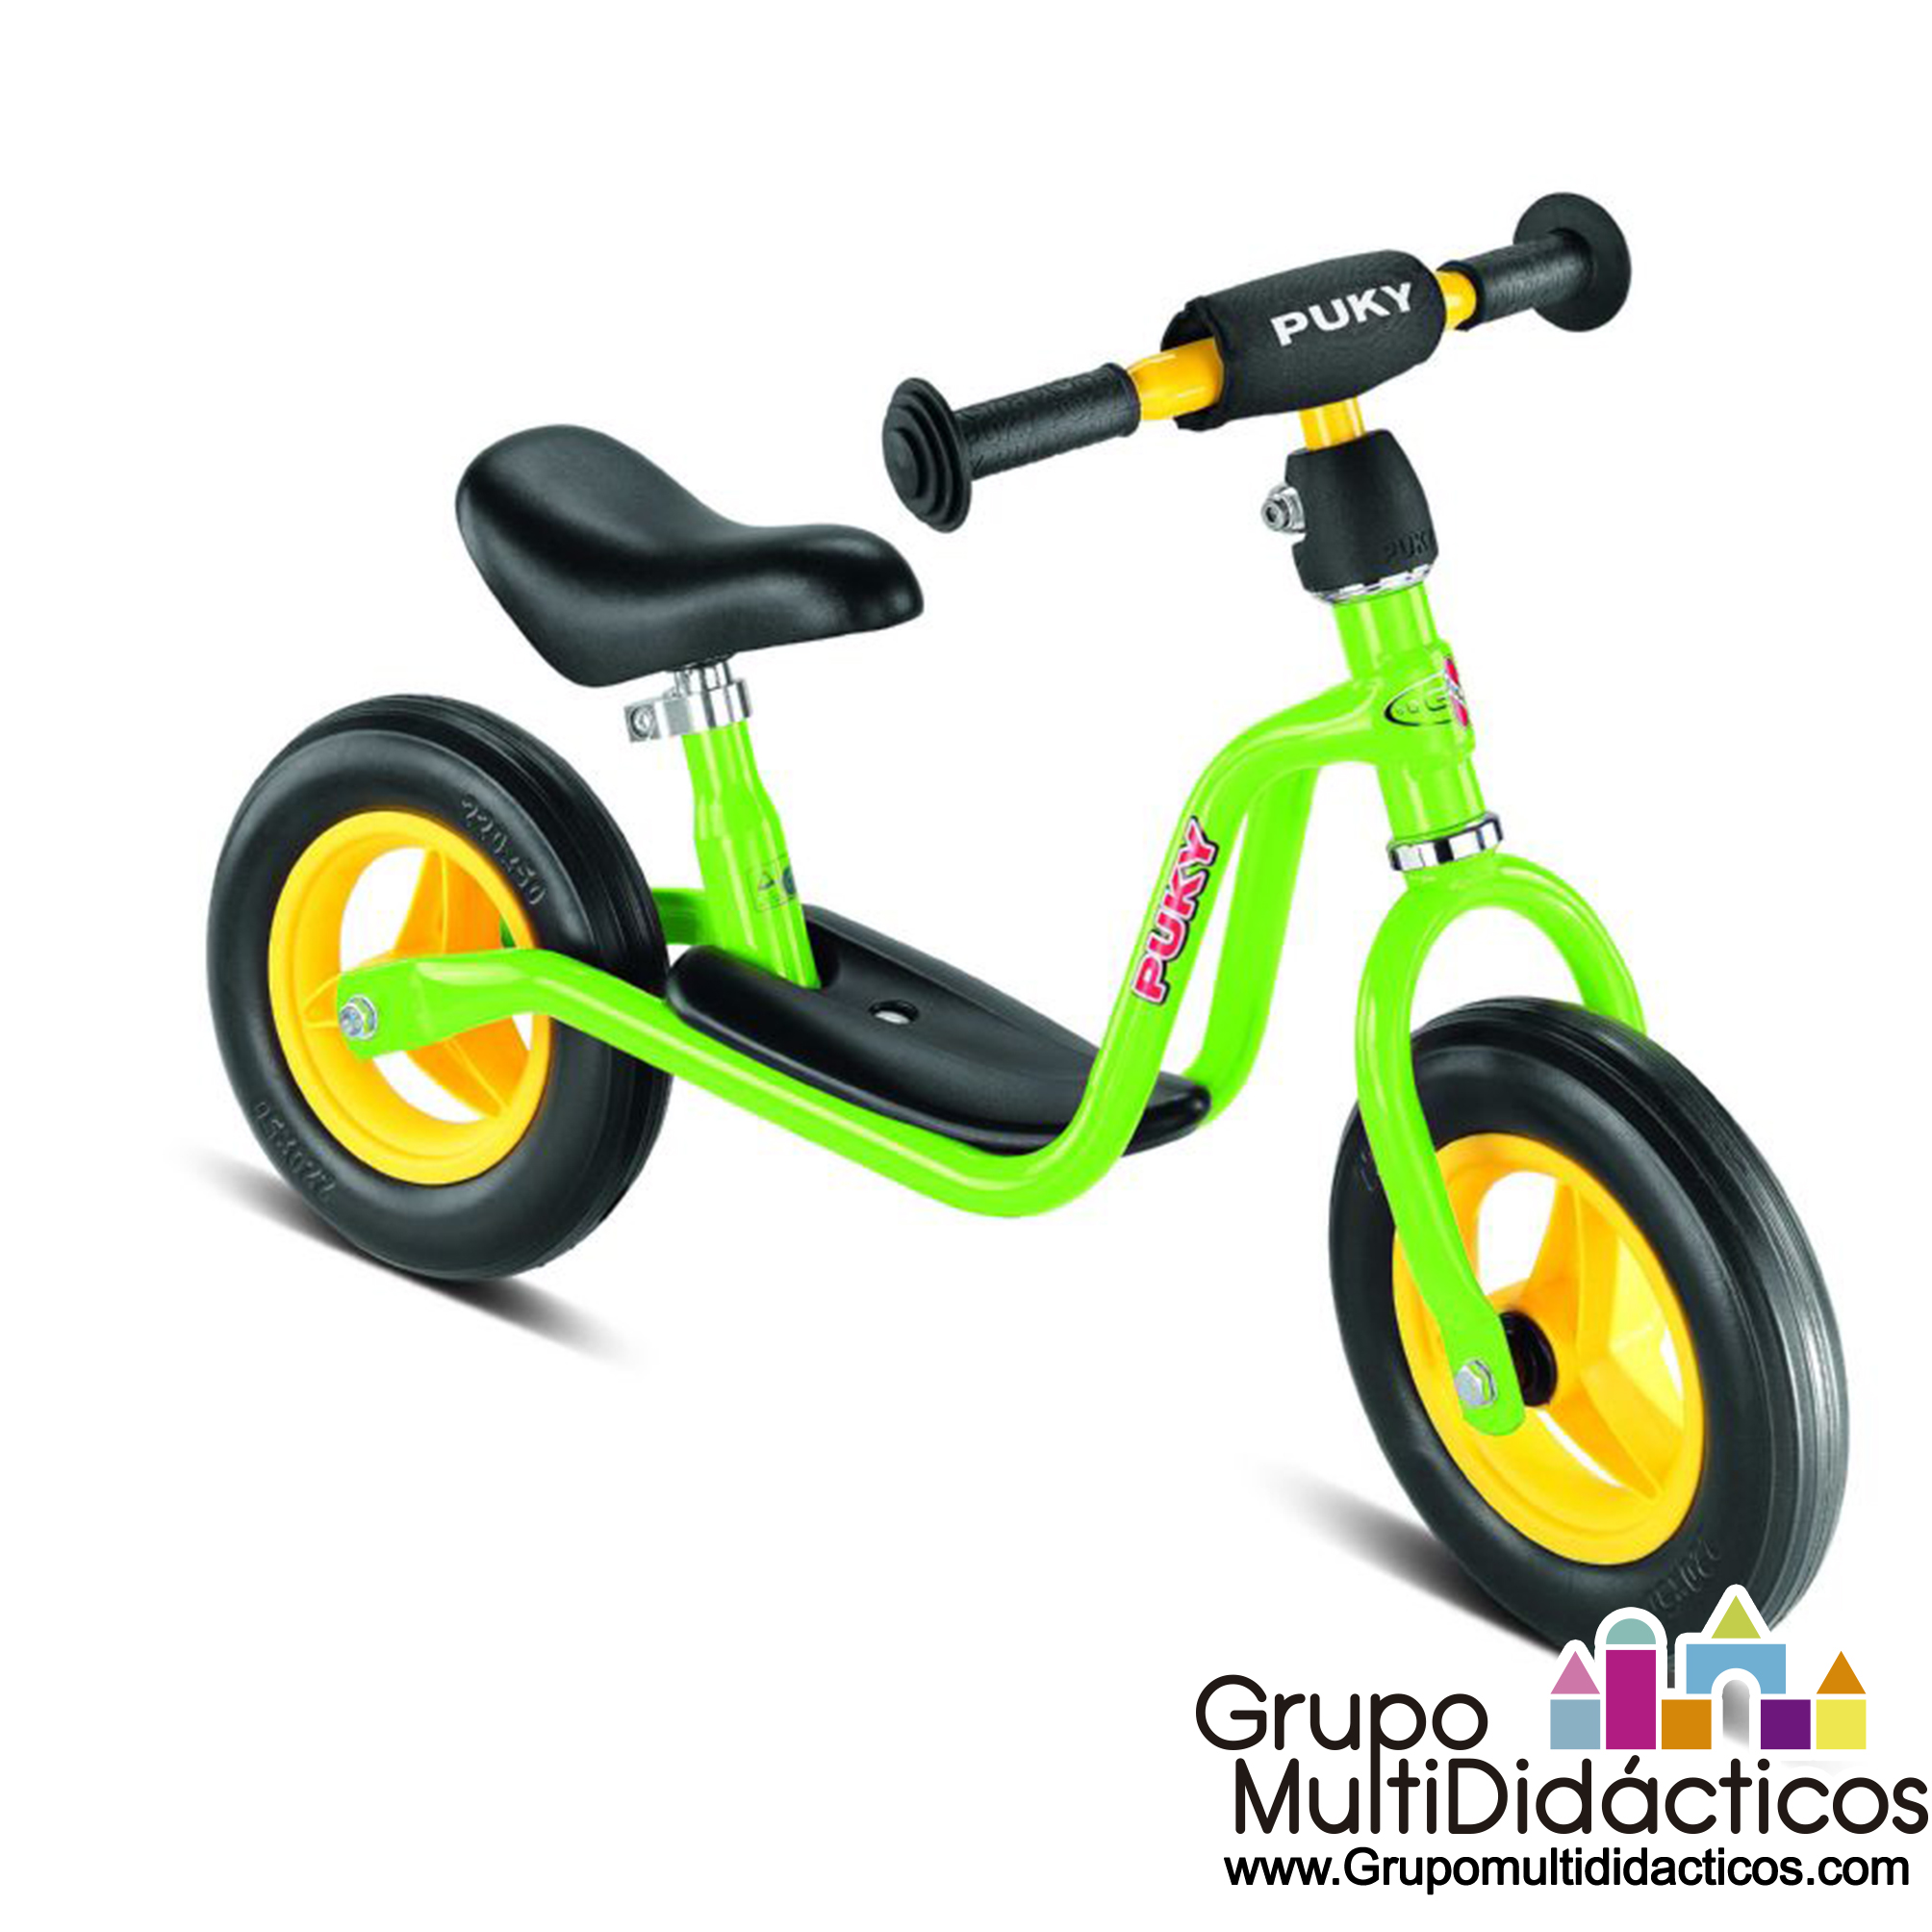 https://multididacticos.com/images/productos/peq/bicicleta%20sin%20pedales%202a.jpg